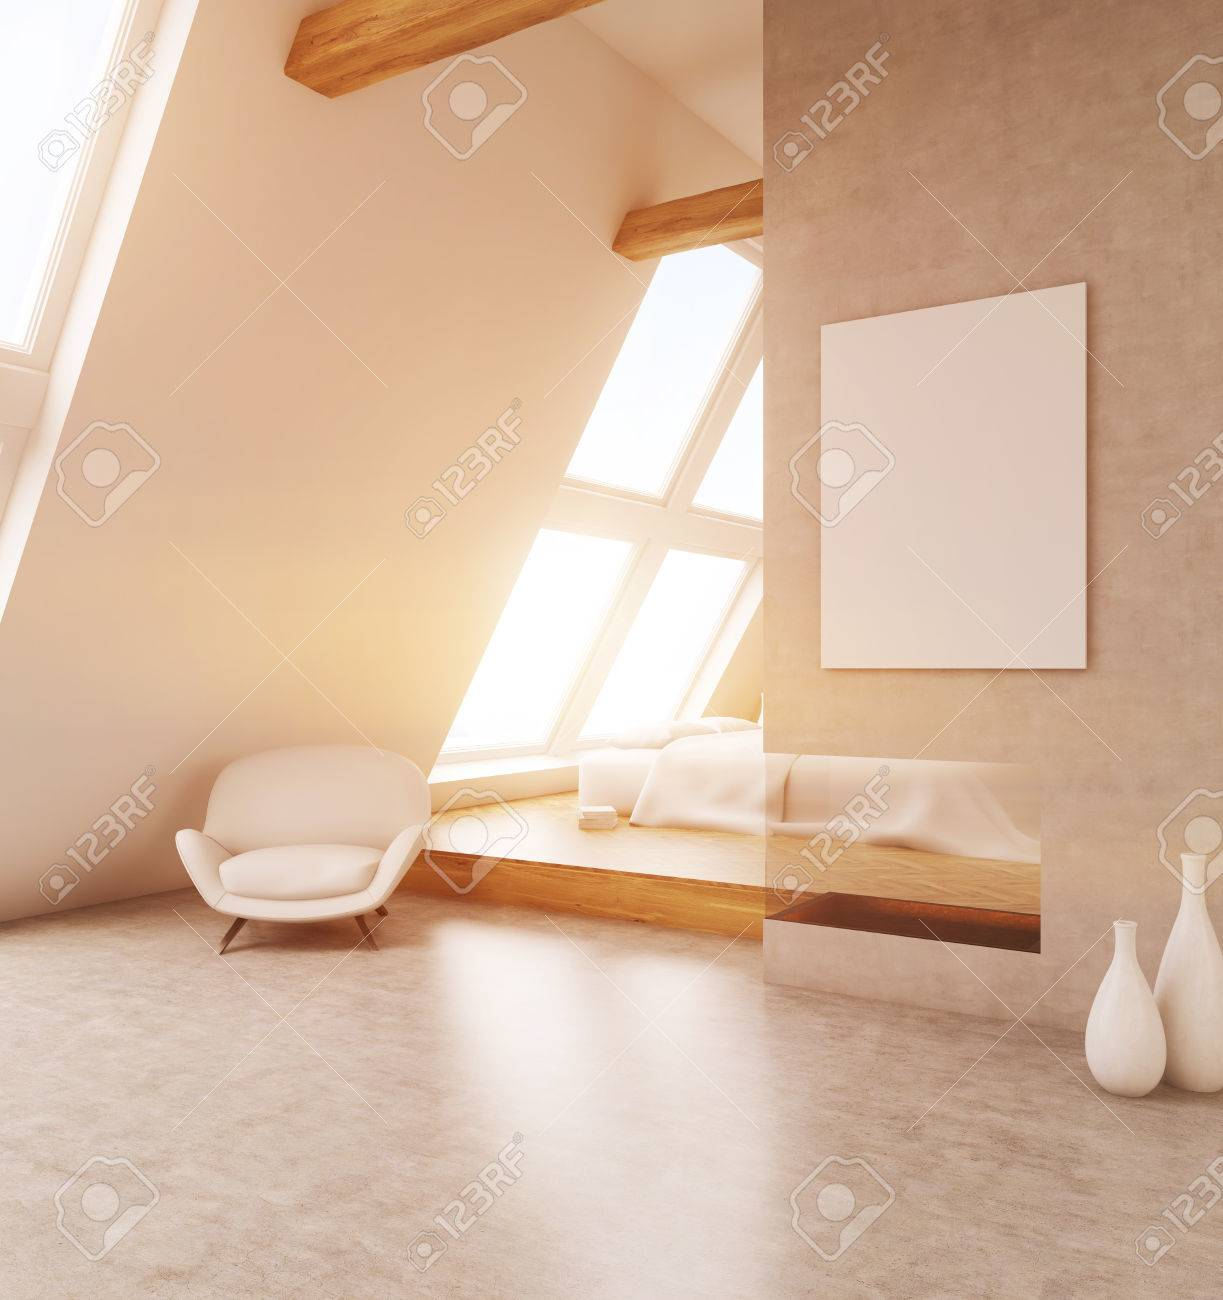 Schlafzimmer Beige Wand Stock Photo